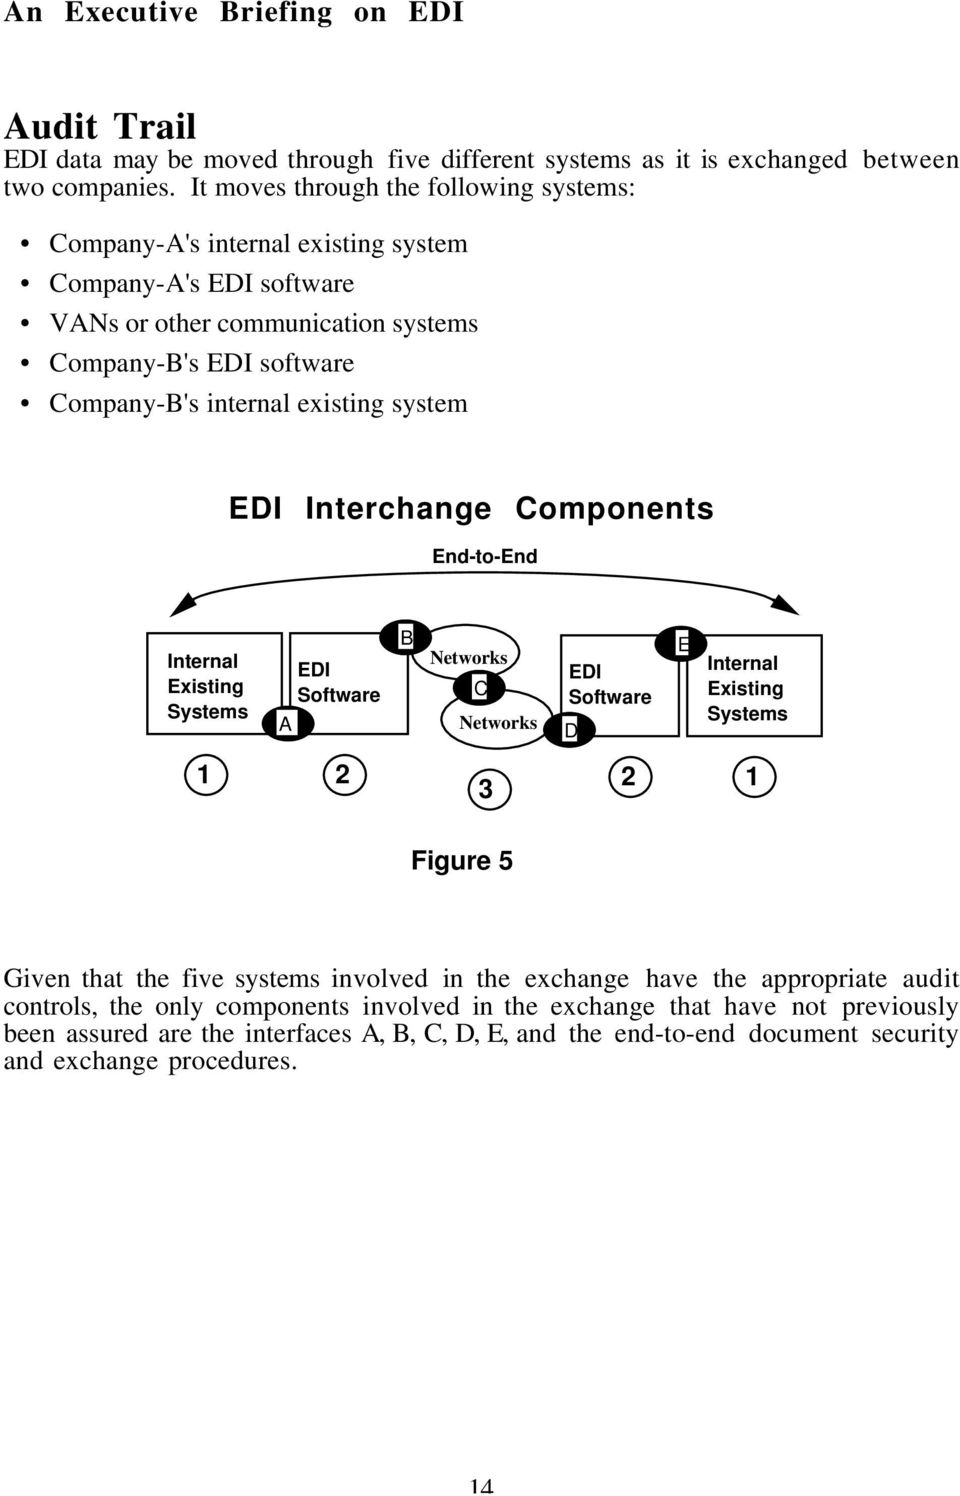 existing system EDI Interchange Components End-to-End Internal Existing Systems EDI Software A B Networks C Networks EDI Software D Internal Existing Systems 1 A 2 2 1 3 E Figure 5